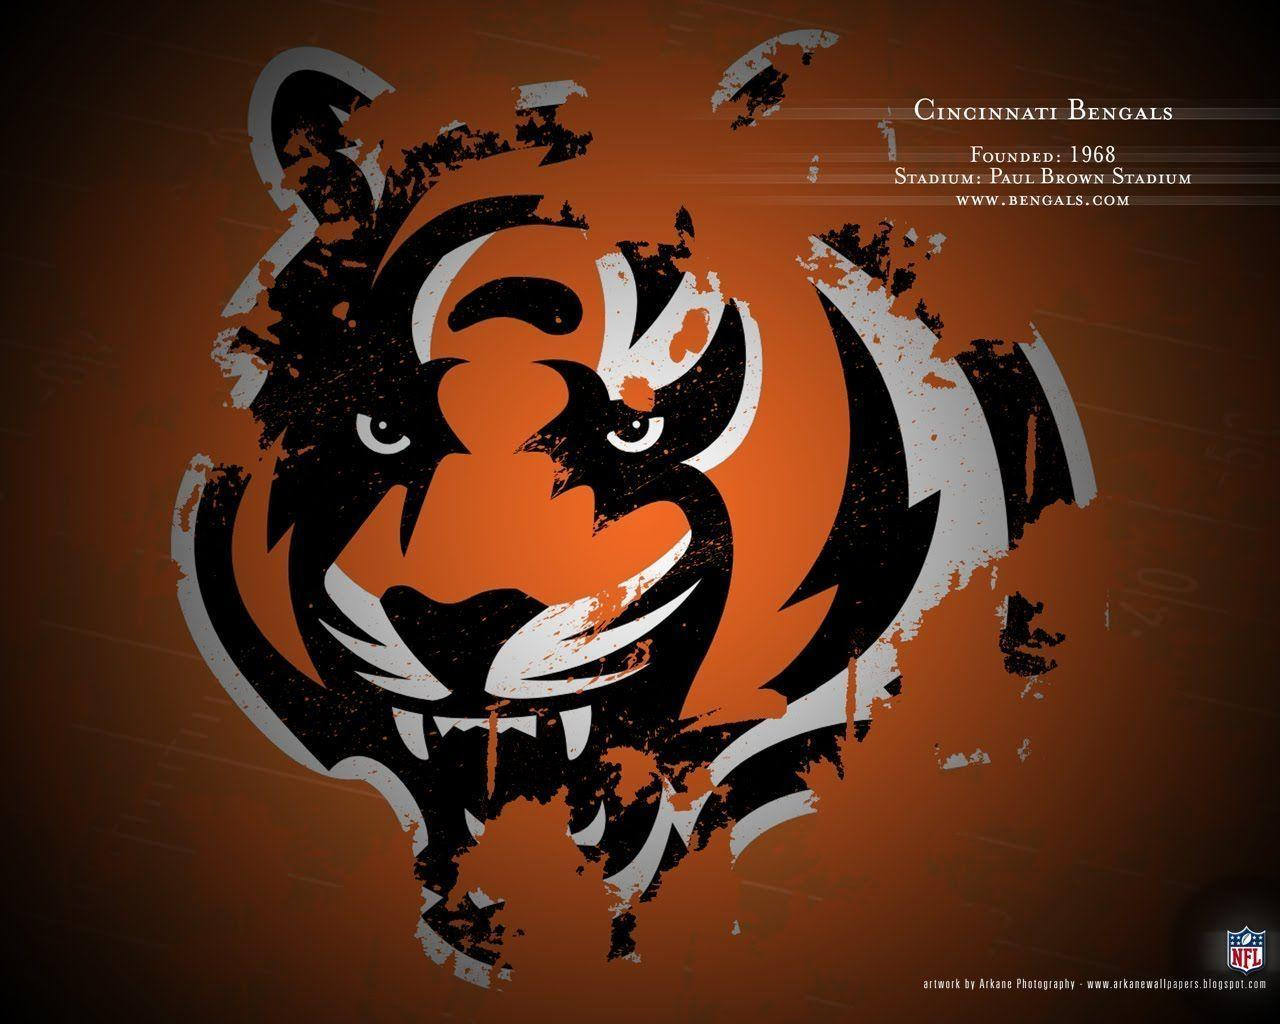 Cincinnati Bengals Logo 2013 Wallpaper Background | Image Browse